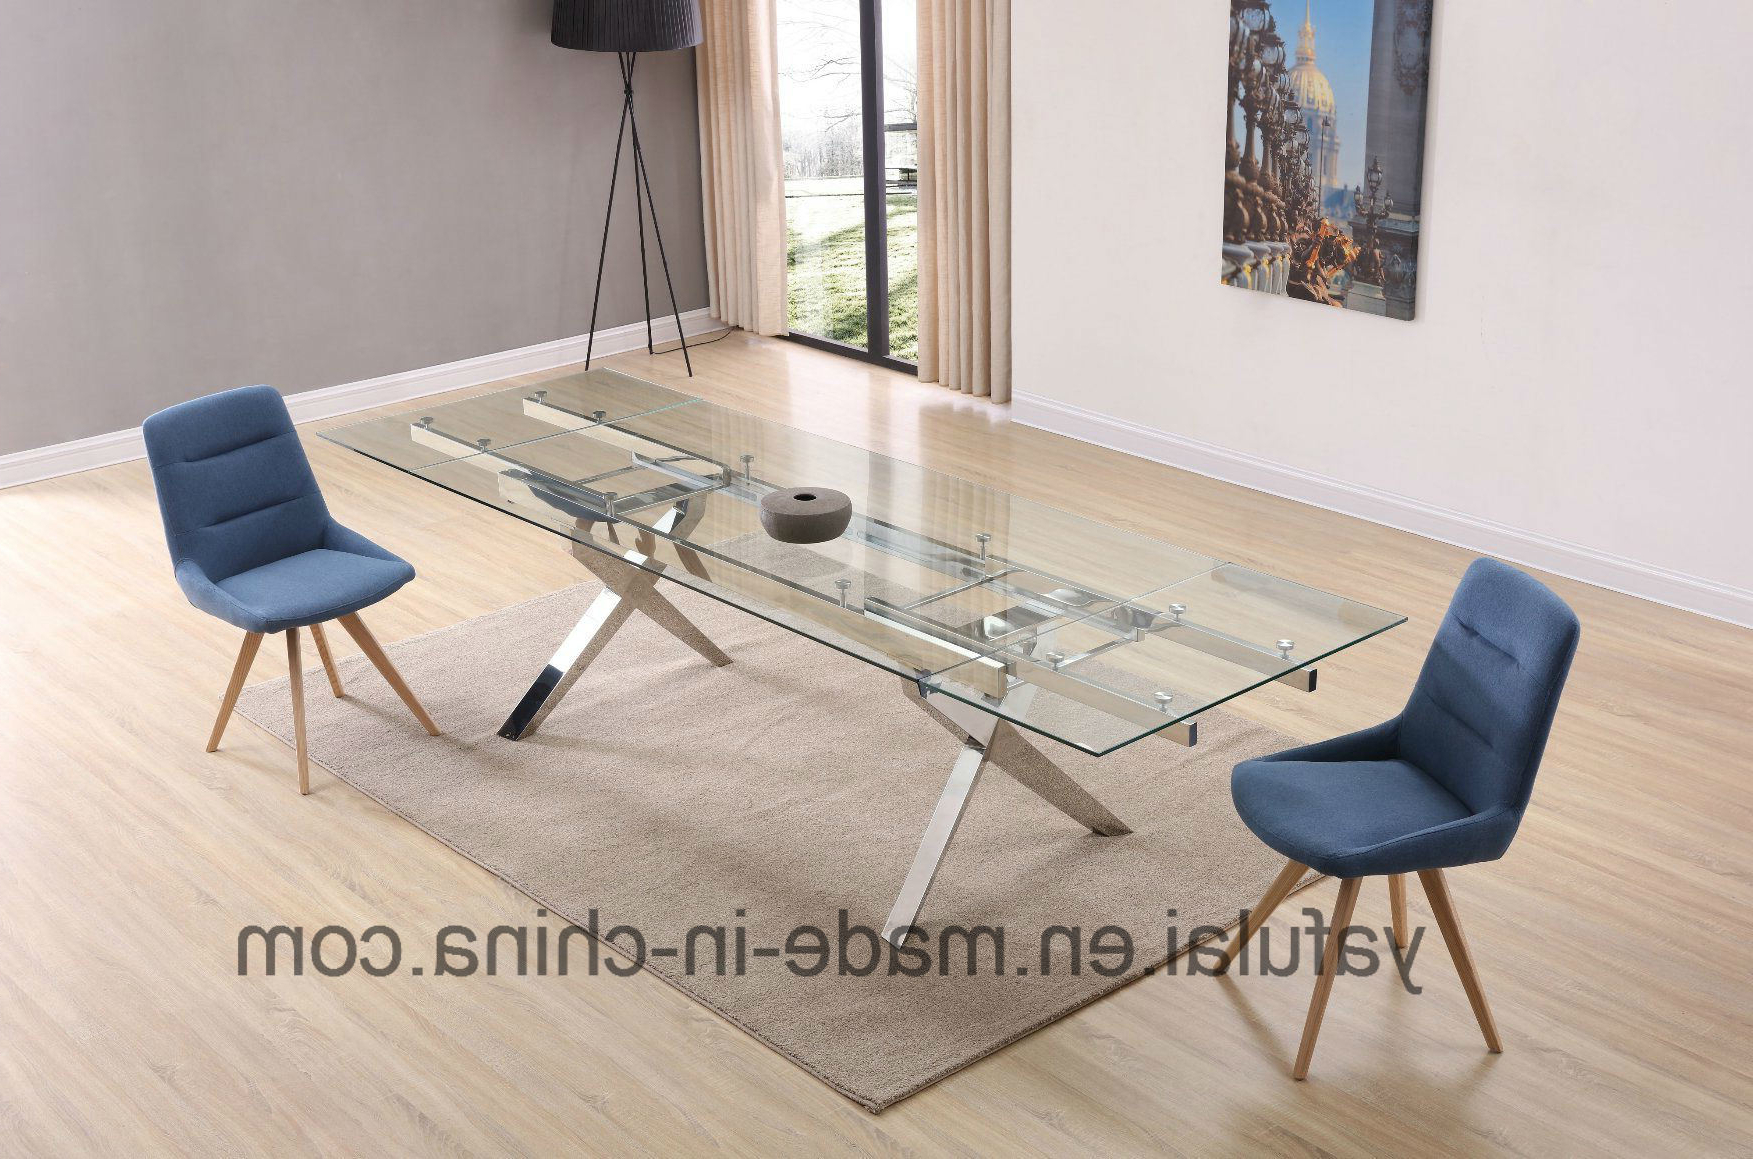 [%[Hot Item] Modern Furniture Stainless Steel Frame Tempered Glass Top Dining Table Regarding Well Liked Modern Glass Top Extension Dining Tables In Stainless|Modern Glass Top Extension Dining Tables In Stainless With Regard To Well Known [Hot Item] Modern Furniture Stainless Steel Frame Tempered Glass Top Dining Table|Well Known Modern Glass Top Extension Dining Tables In Stainless Within [Hot Item] Modern Furniture Stainless Steel Frame Tempered Glass Top Dining Table|Most Current [Hot Item] Modern Furniture Stainless Steel Frame Tempered Glass Top Dining Table Regarding Modern Glass Top Extension Dining Tables In Stainless%] (View 18 of 25)